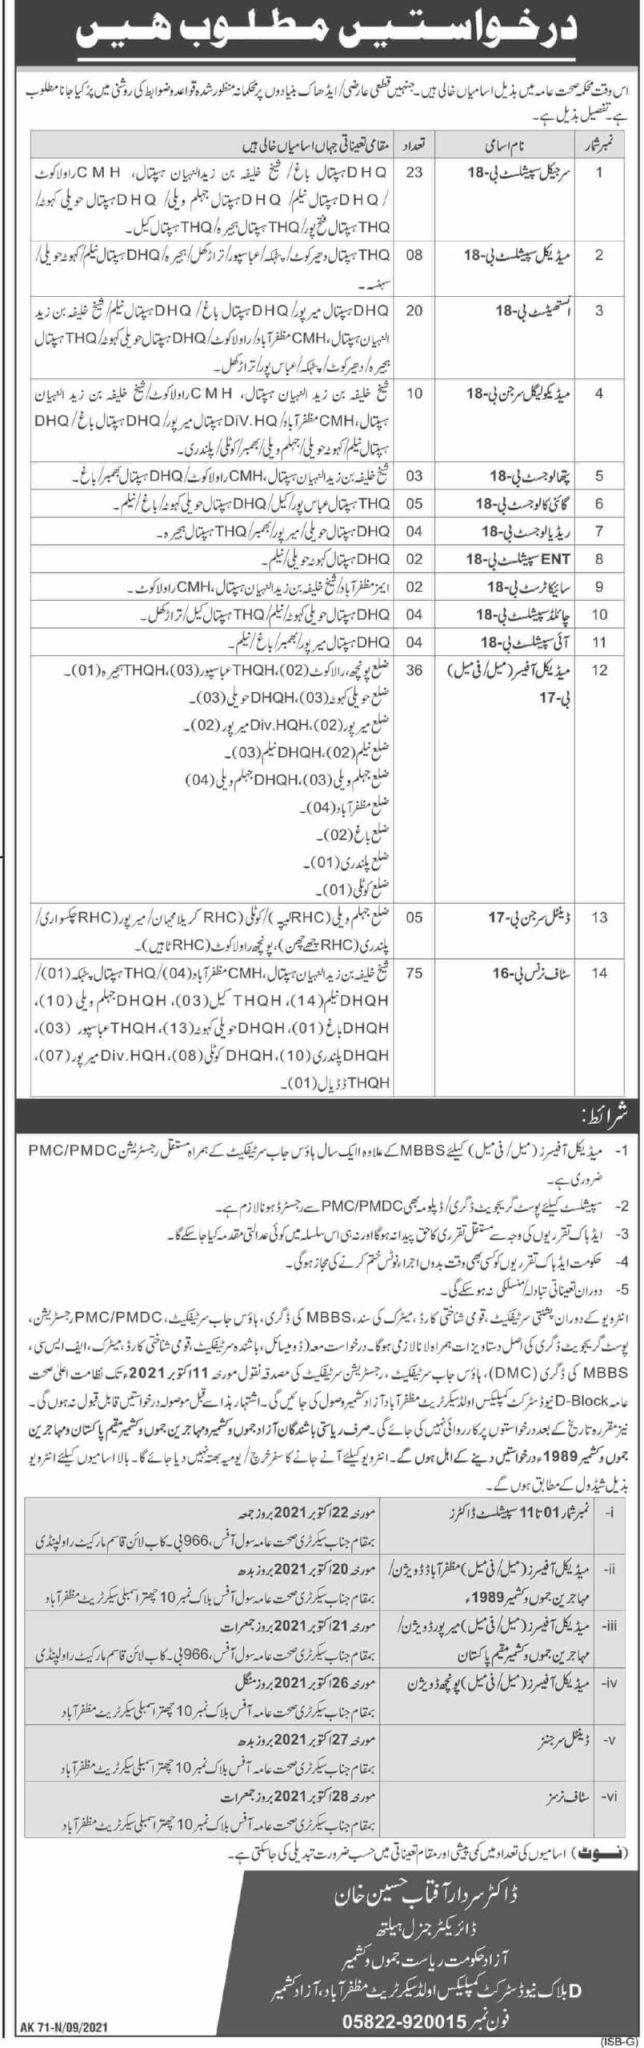 Latest Govt Jobs in AJK At Health Department AJK